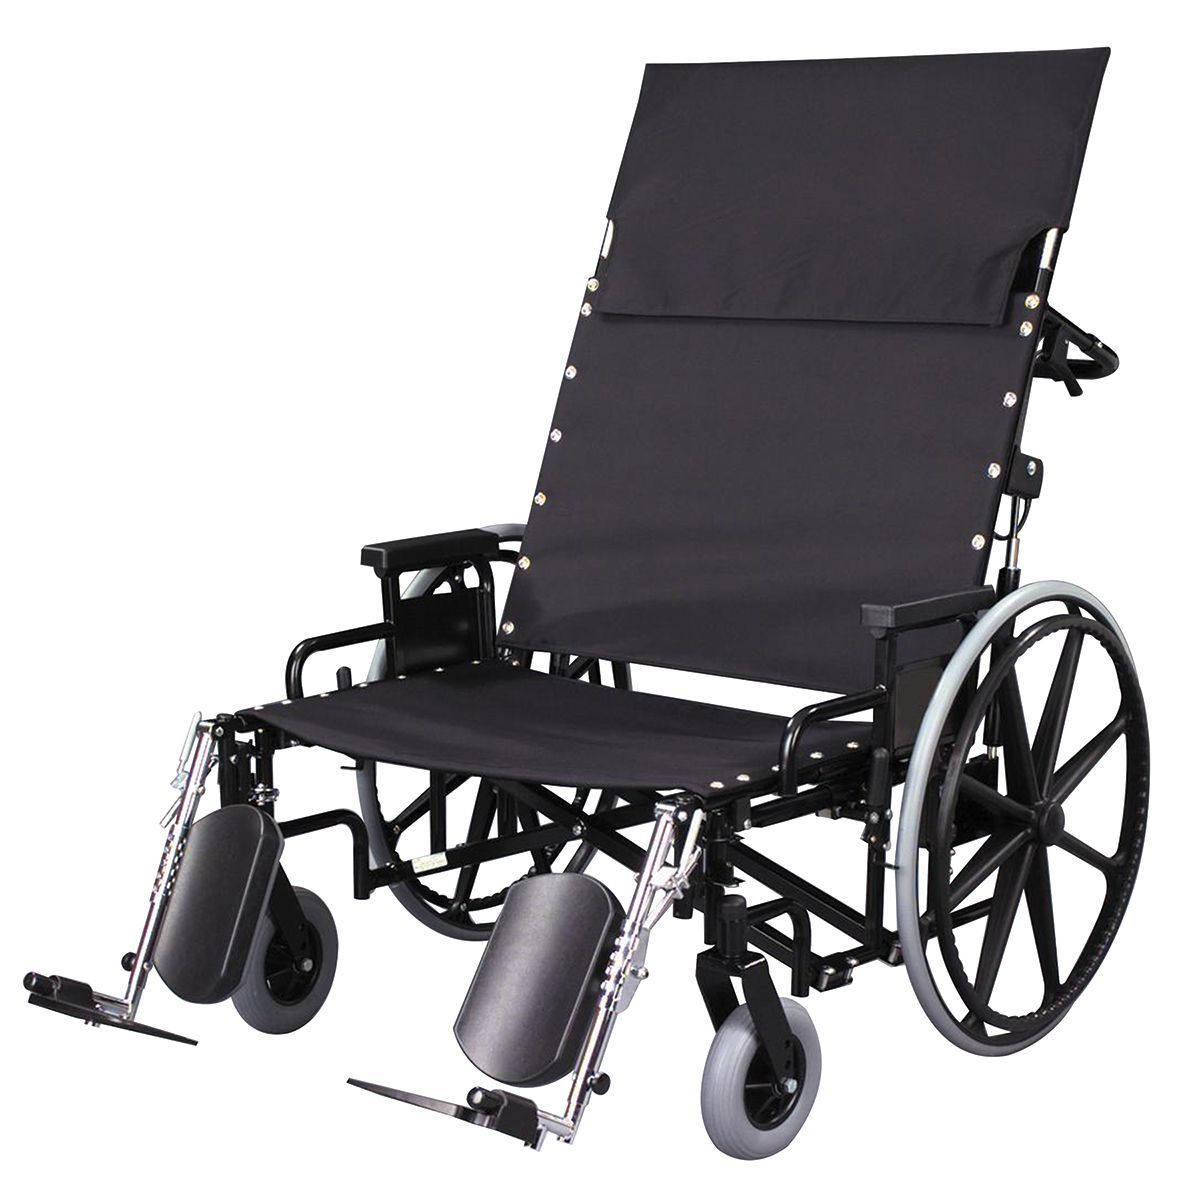 Gendron - Regency XL2000 High Back Reclining Wheelchair